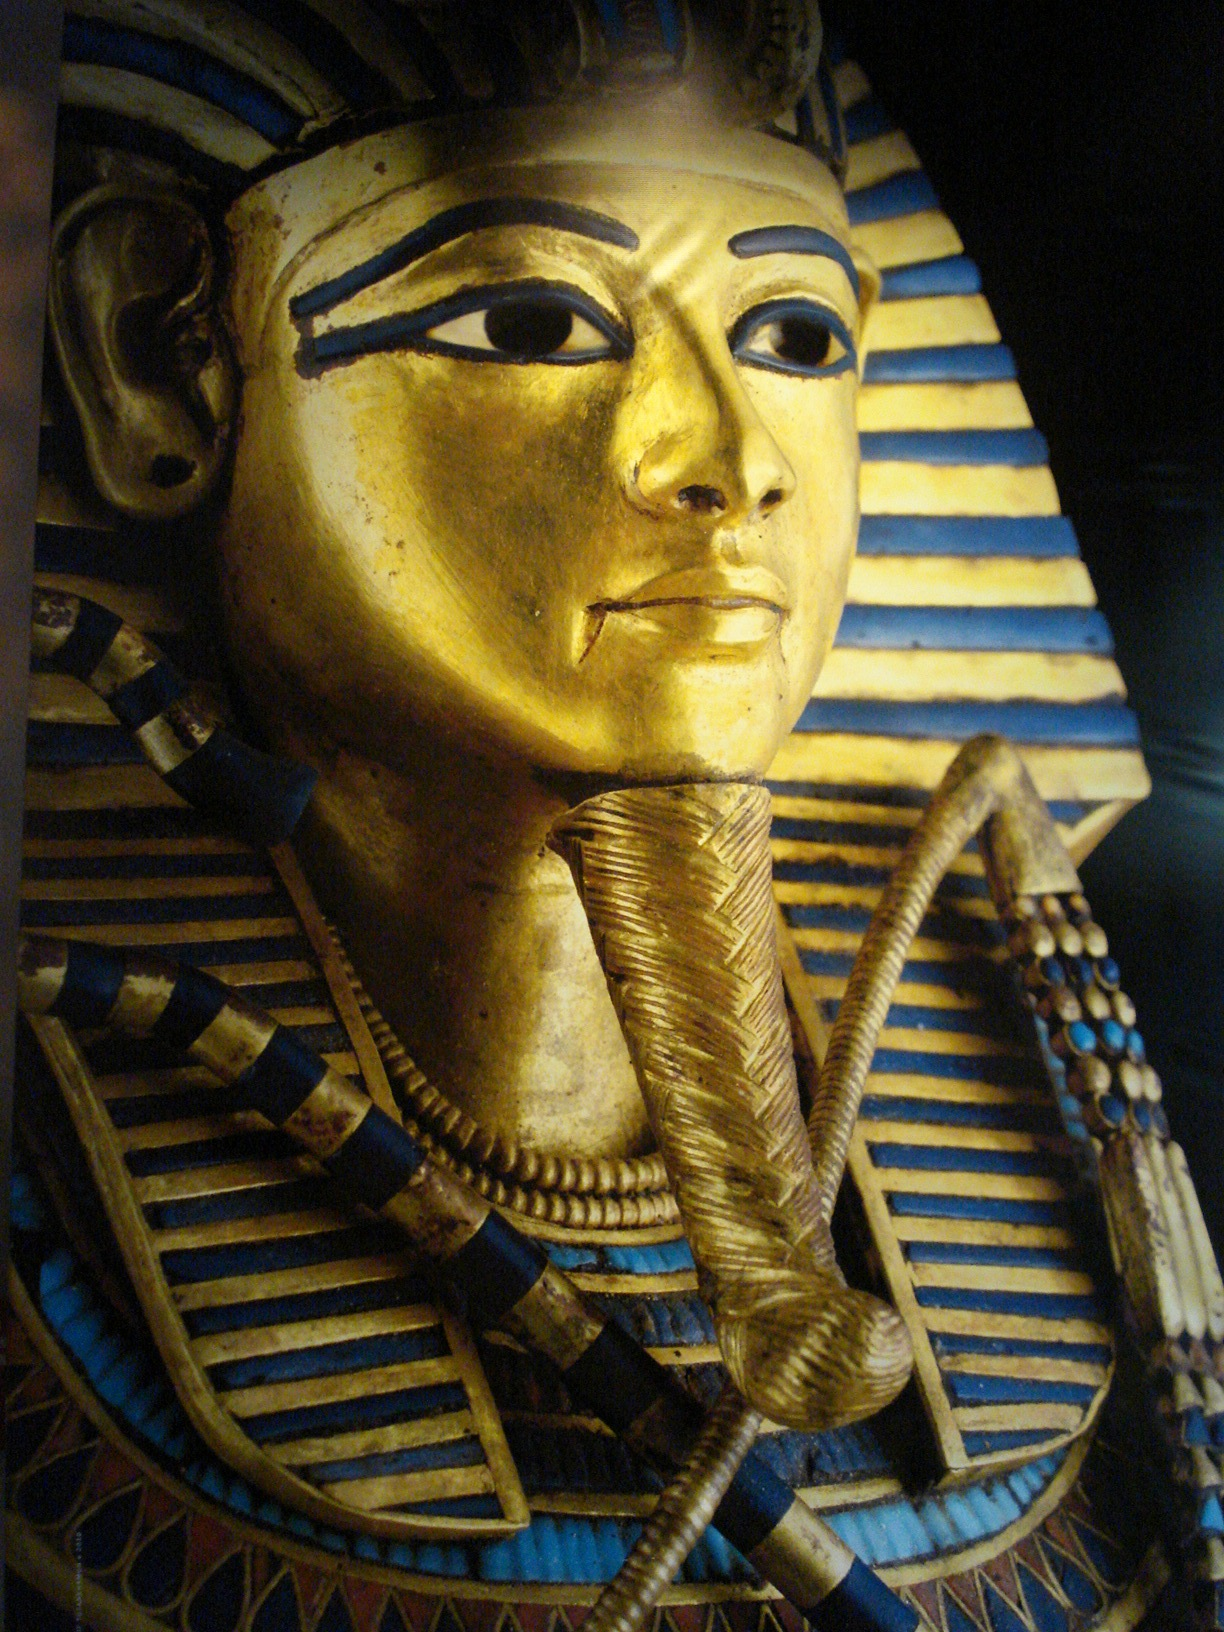 King Tut Trinket Hunting The Discovery Center Gift Shopthe Chronicles Of Piercingken The